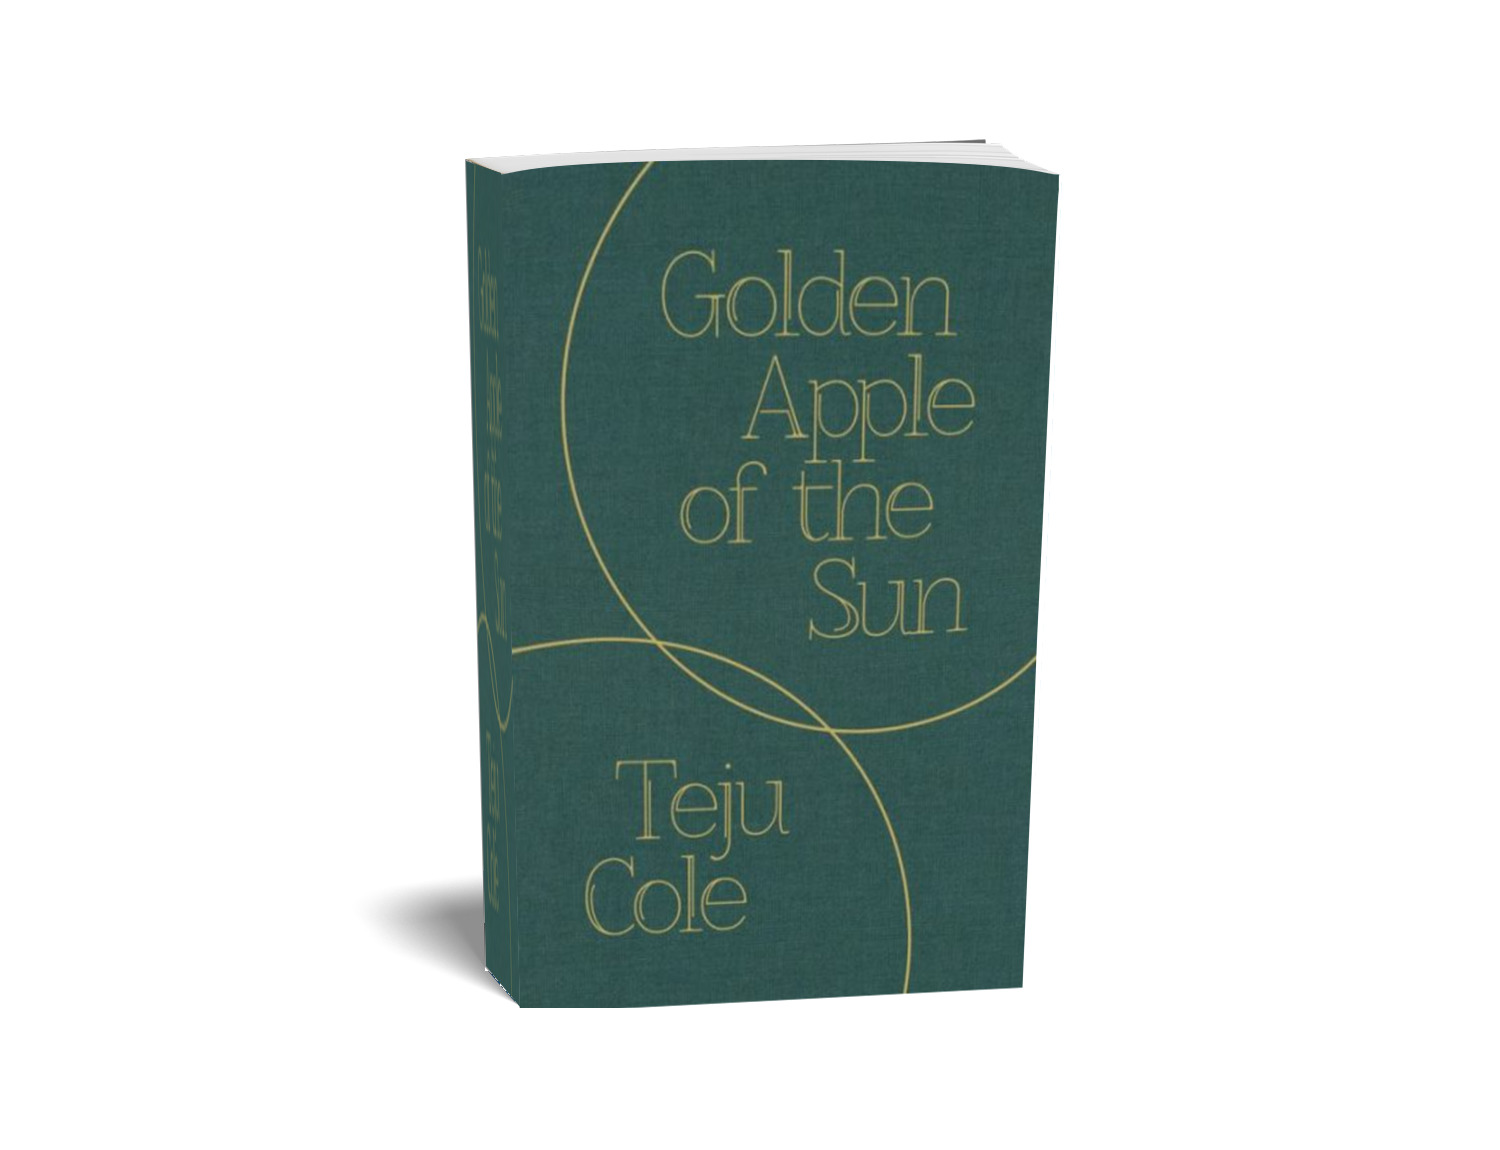 Golden Apple of the Sun by Teju Cole.